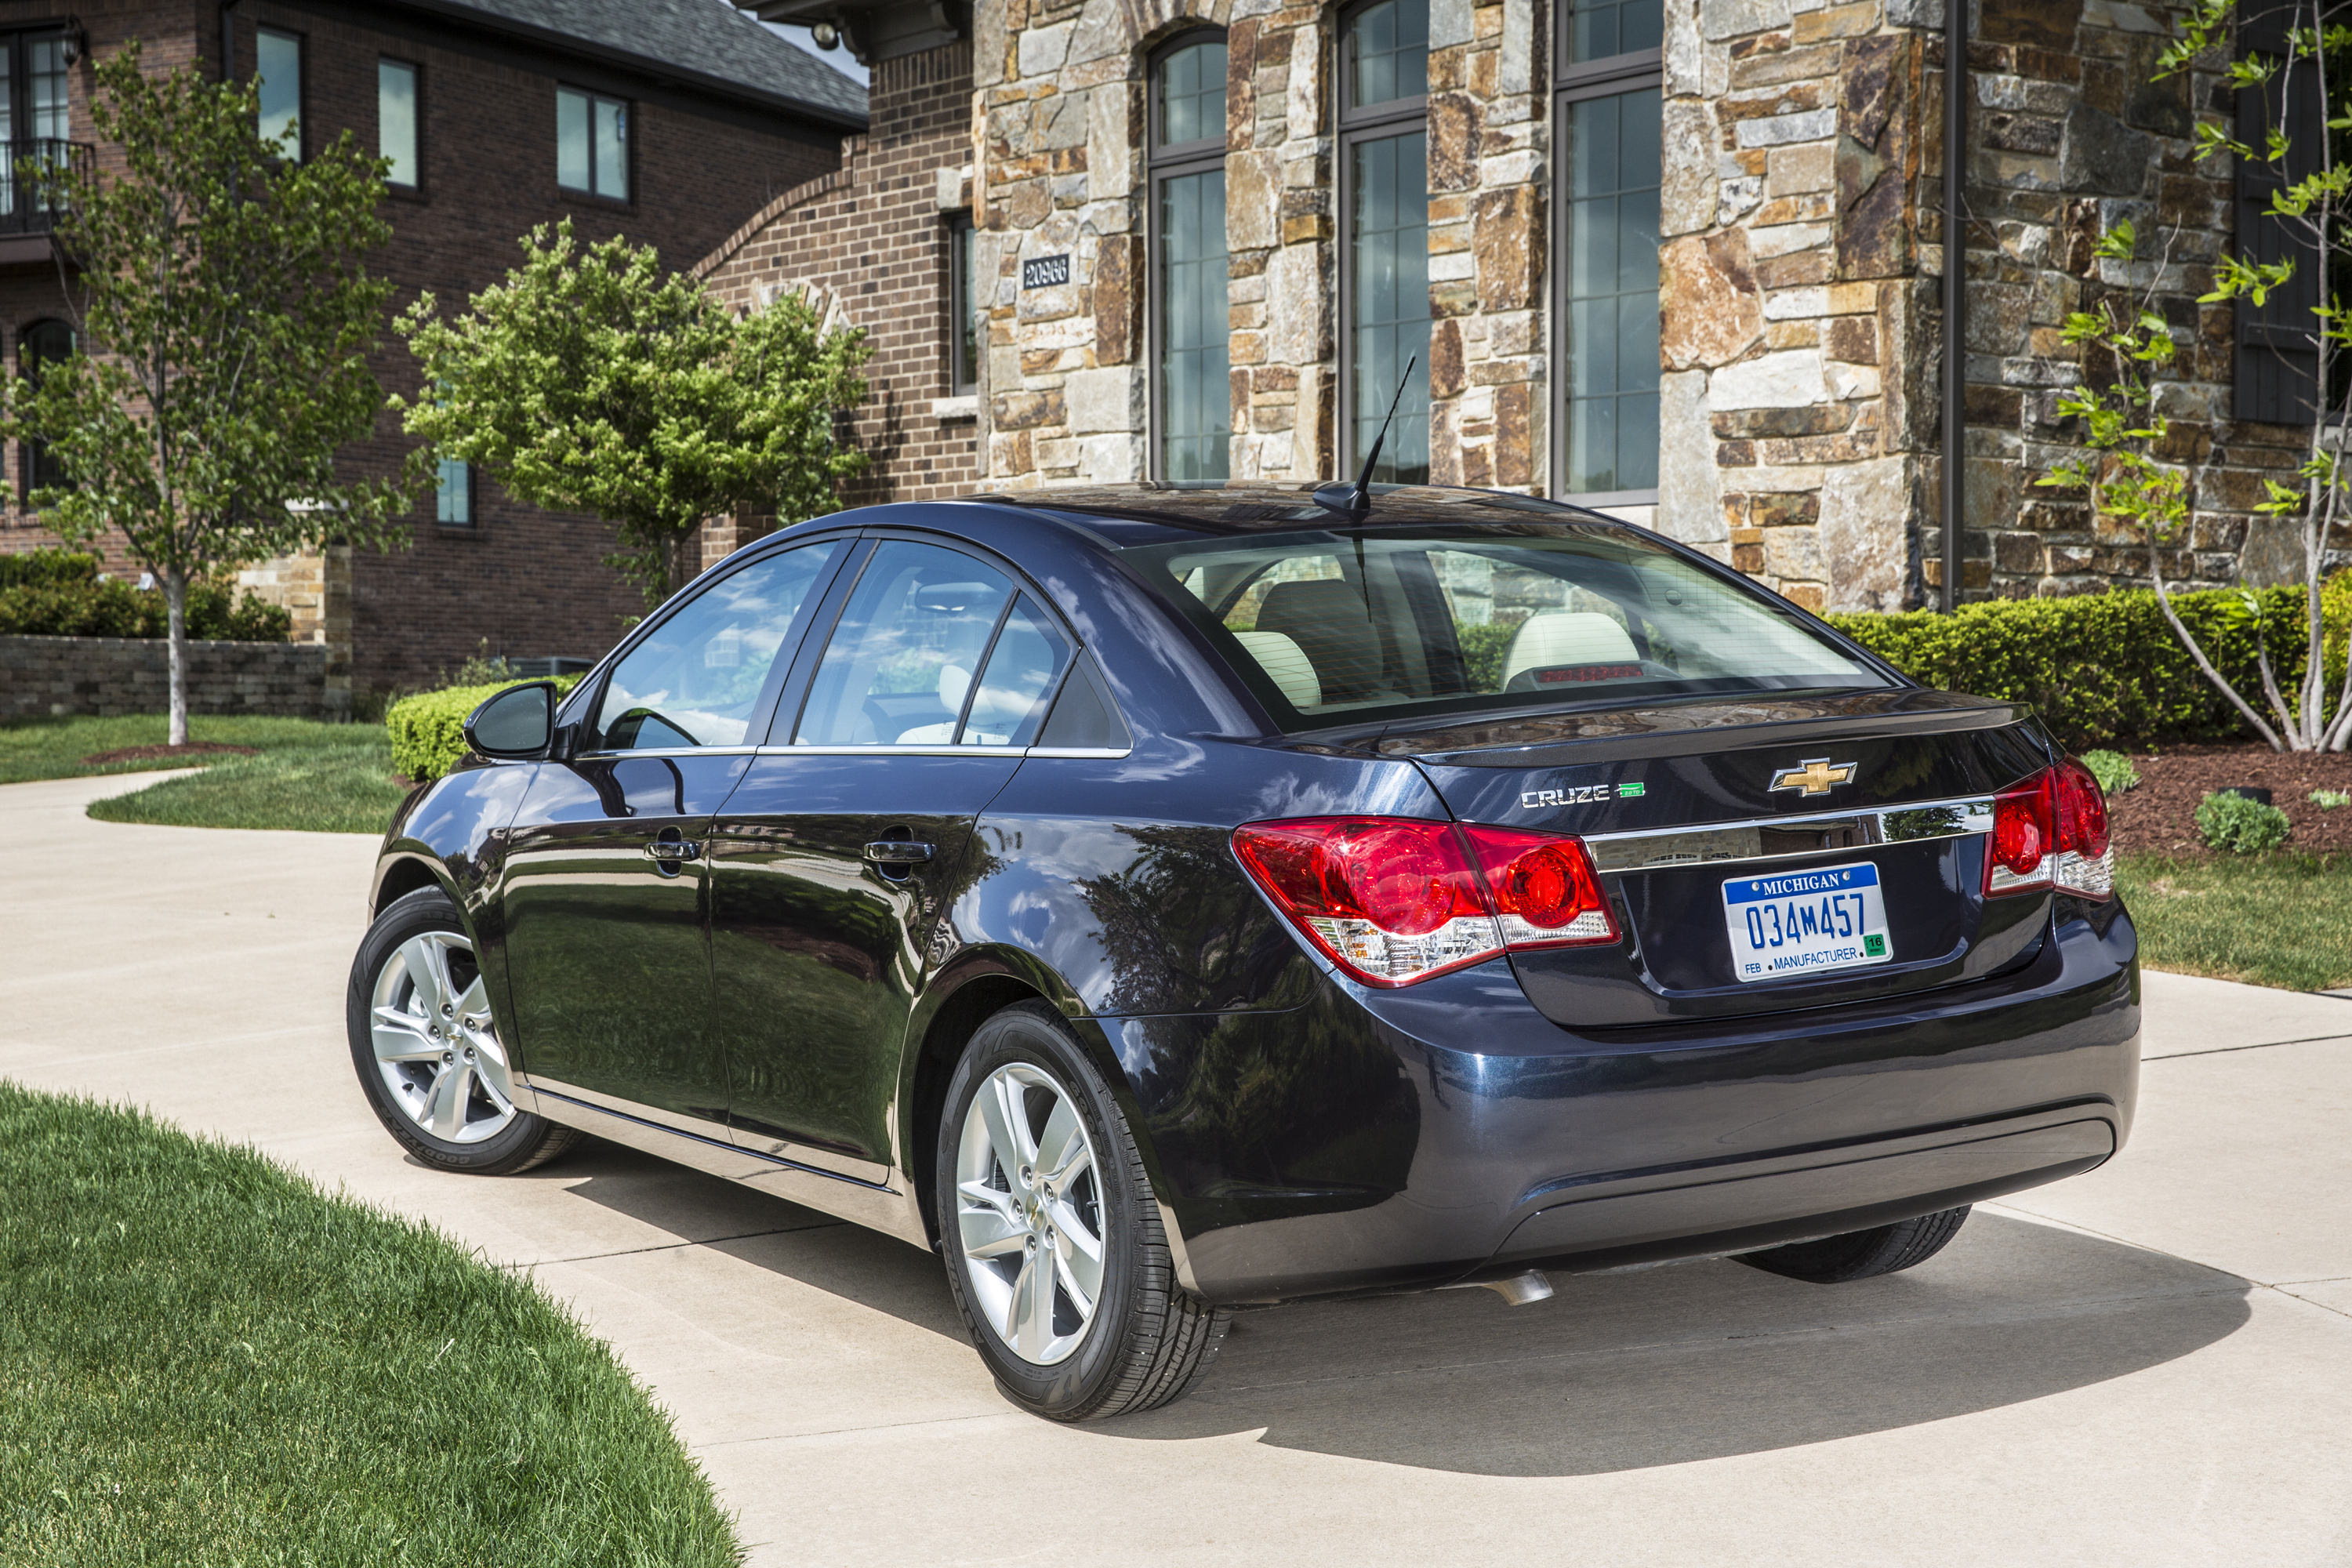 chevrolet td recalls dealers gm for selling cruze some money cruzes chevy xxx axle stop story problem cars